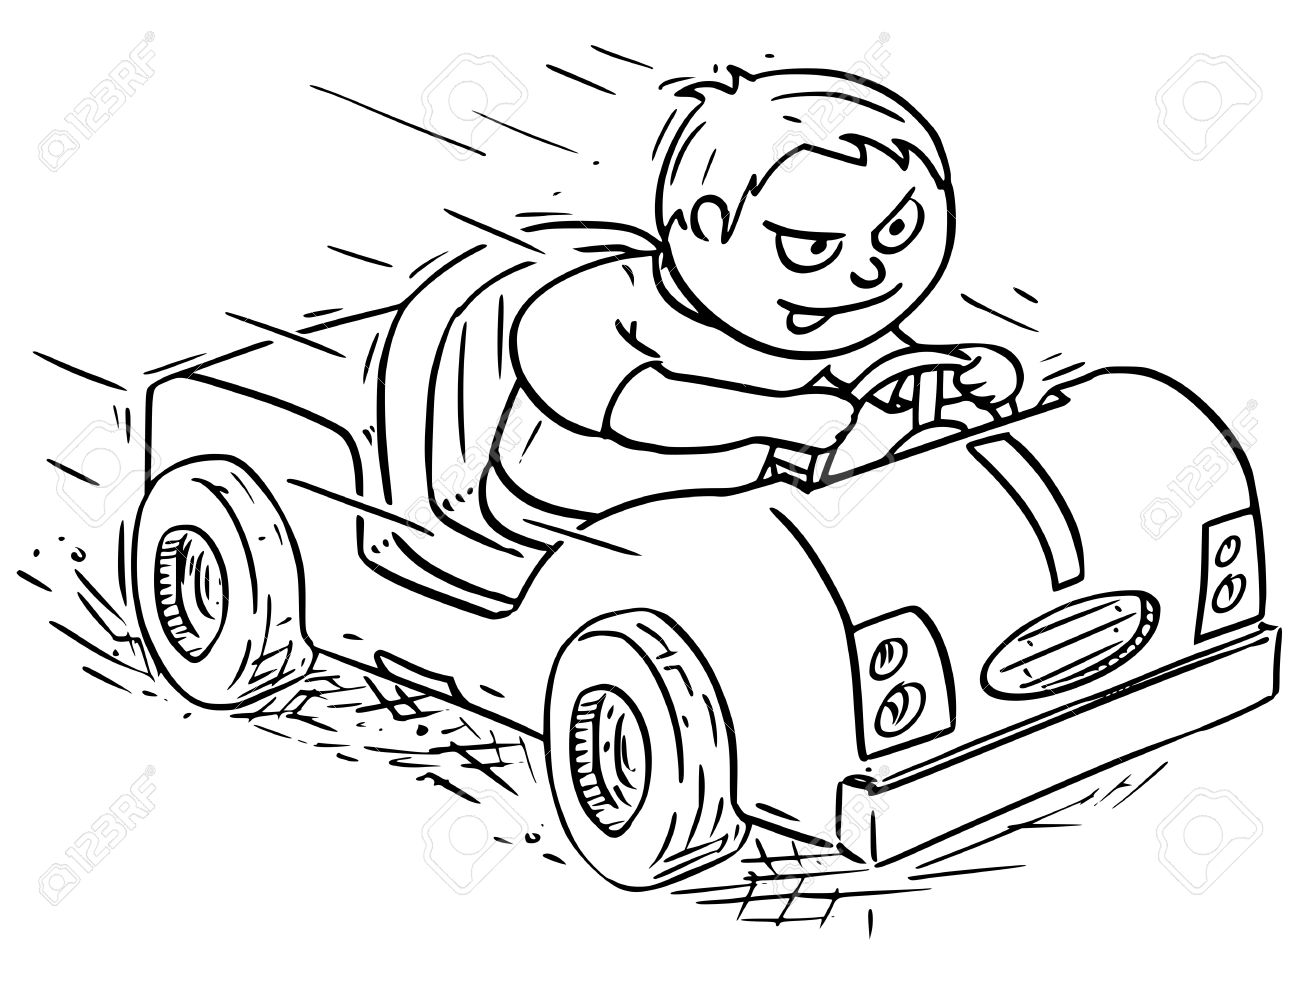 1300x994 Hand Drawing Vector Cartoon Of A Boy Driving Pedal Or Battery